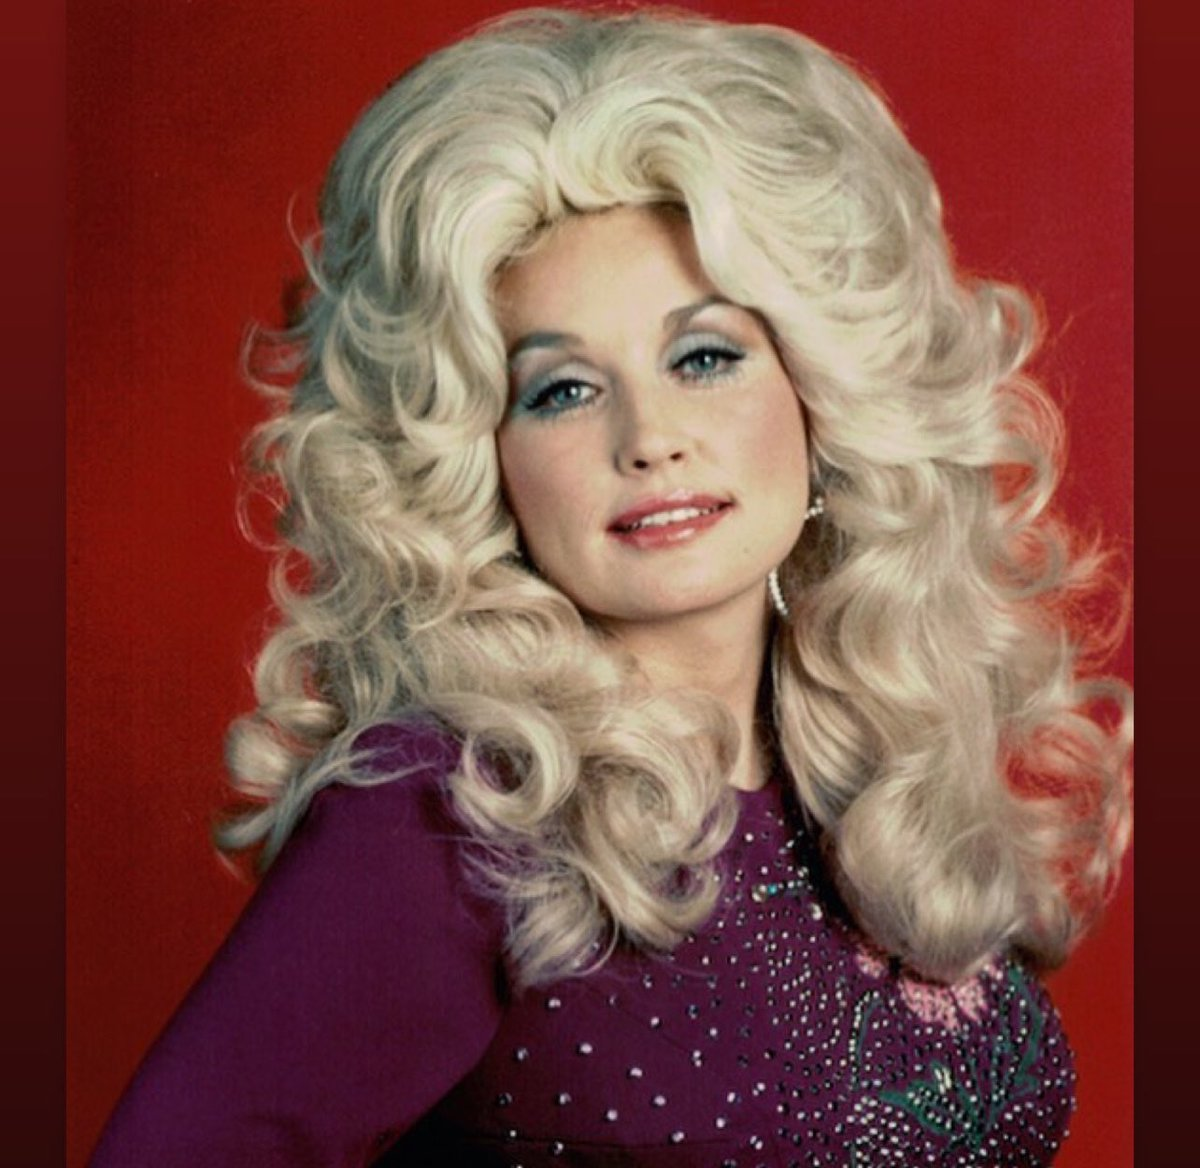 Happy birthday, @DollyParton! We hope your day is perfect. (Like you.)